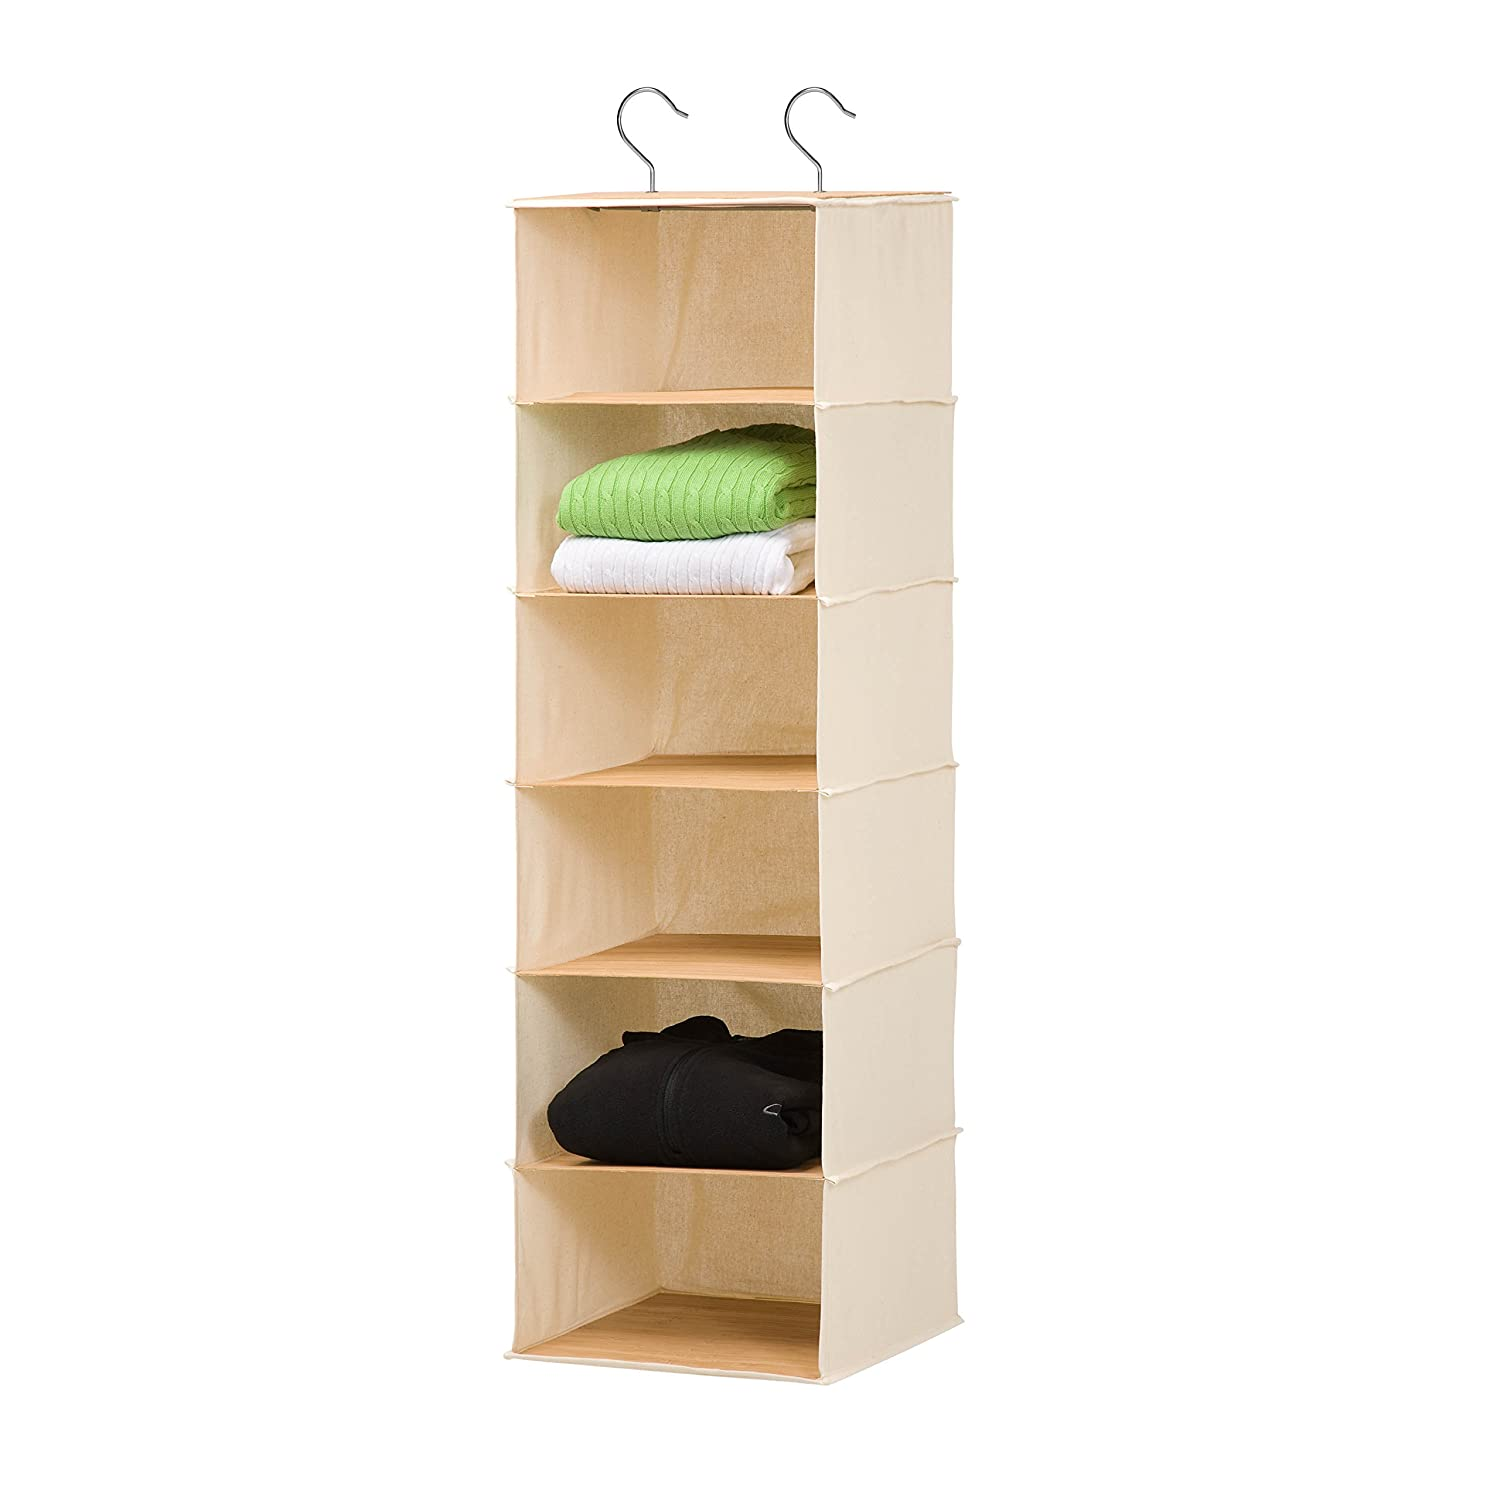 office closet organizer. Amazon.com: Honey-Can-Do SFT-01003 Hanging Closet Organizer, Bamboo/Canvas, 6-Shelf: Home \u0026 Kitchen Office Organizer